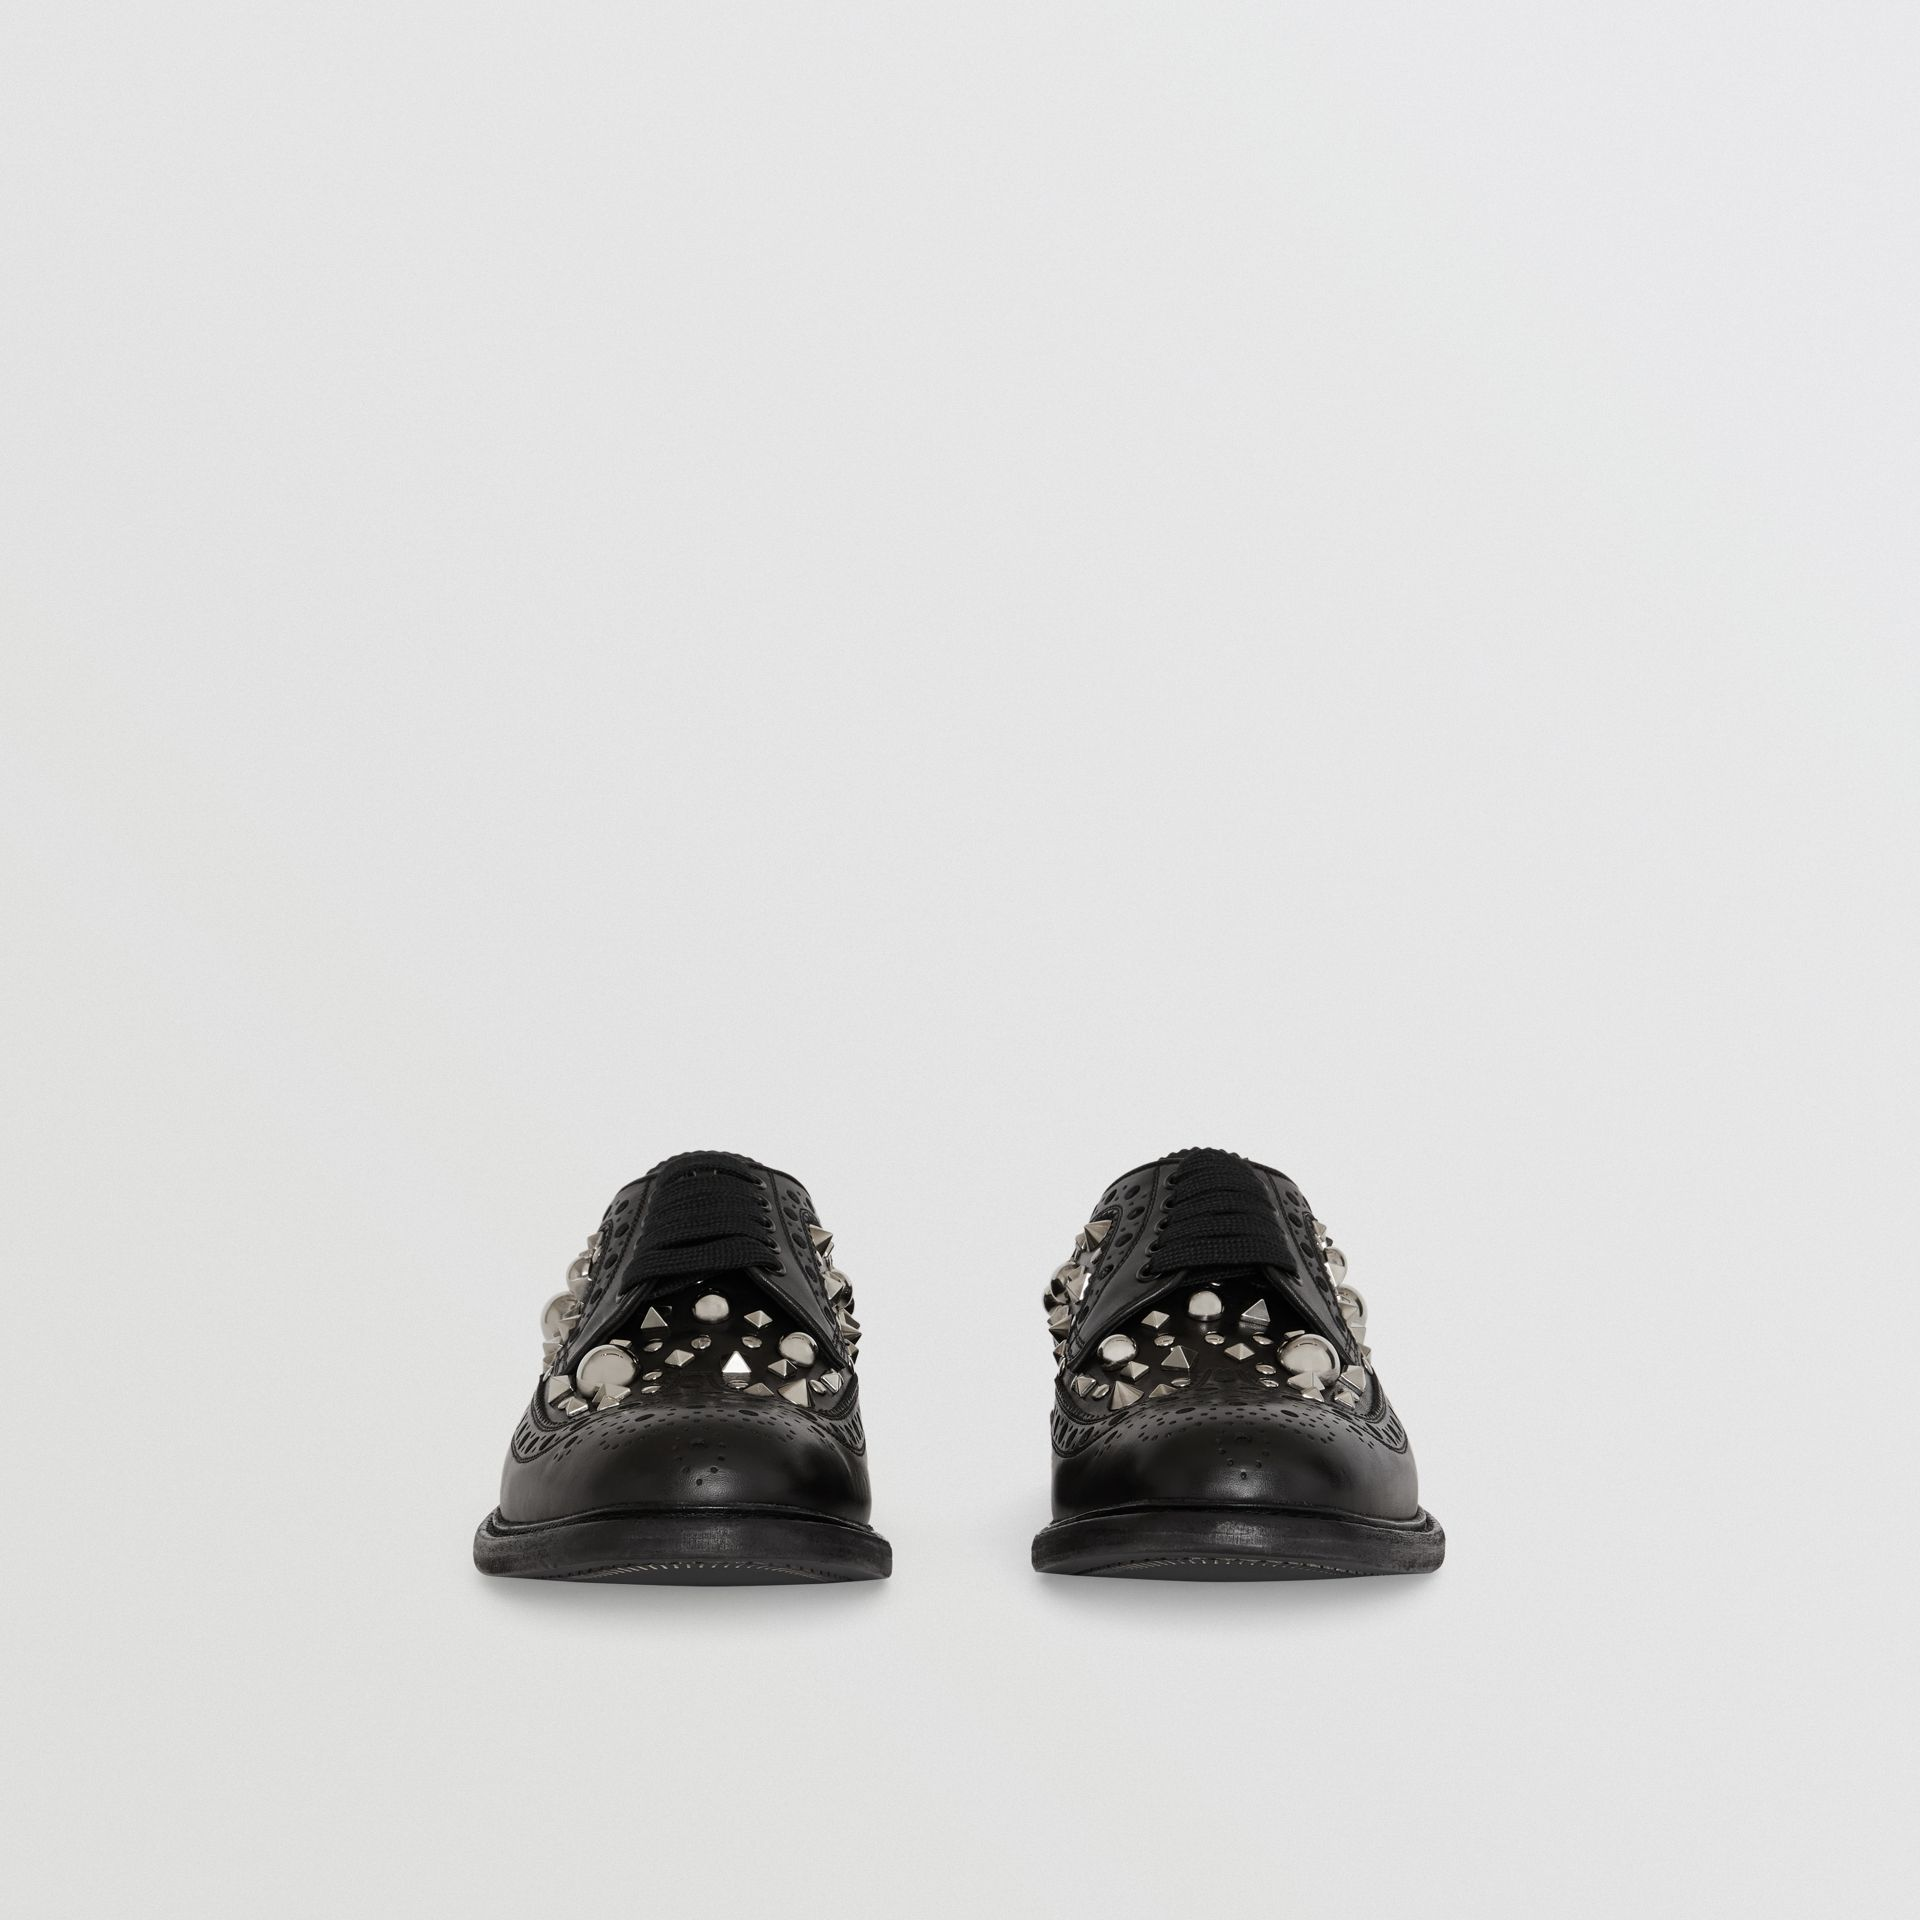 Stud Detail Leather Brogues in Black - Men | Burberry Canada - gallery image 3